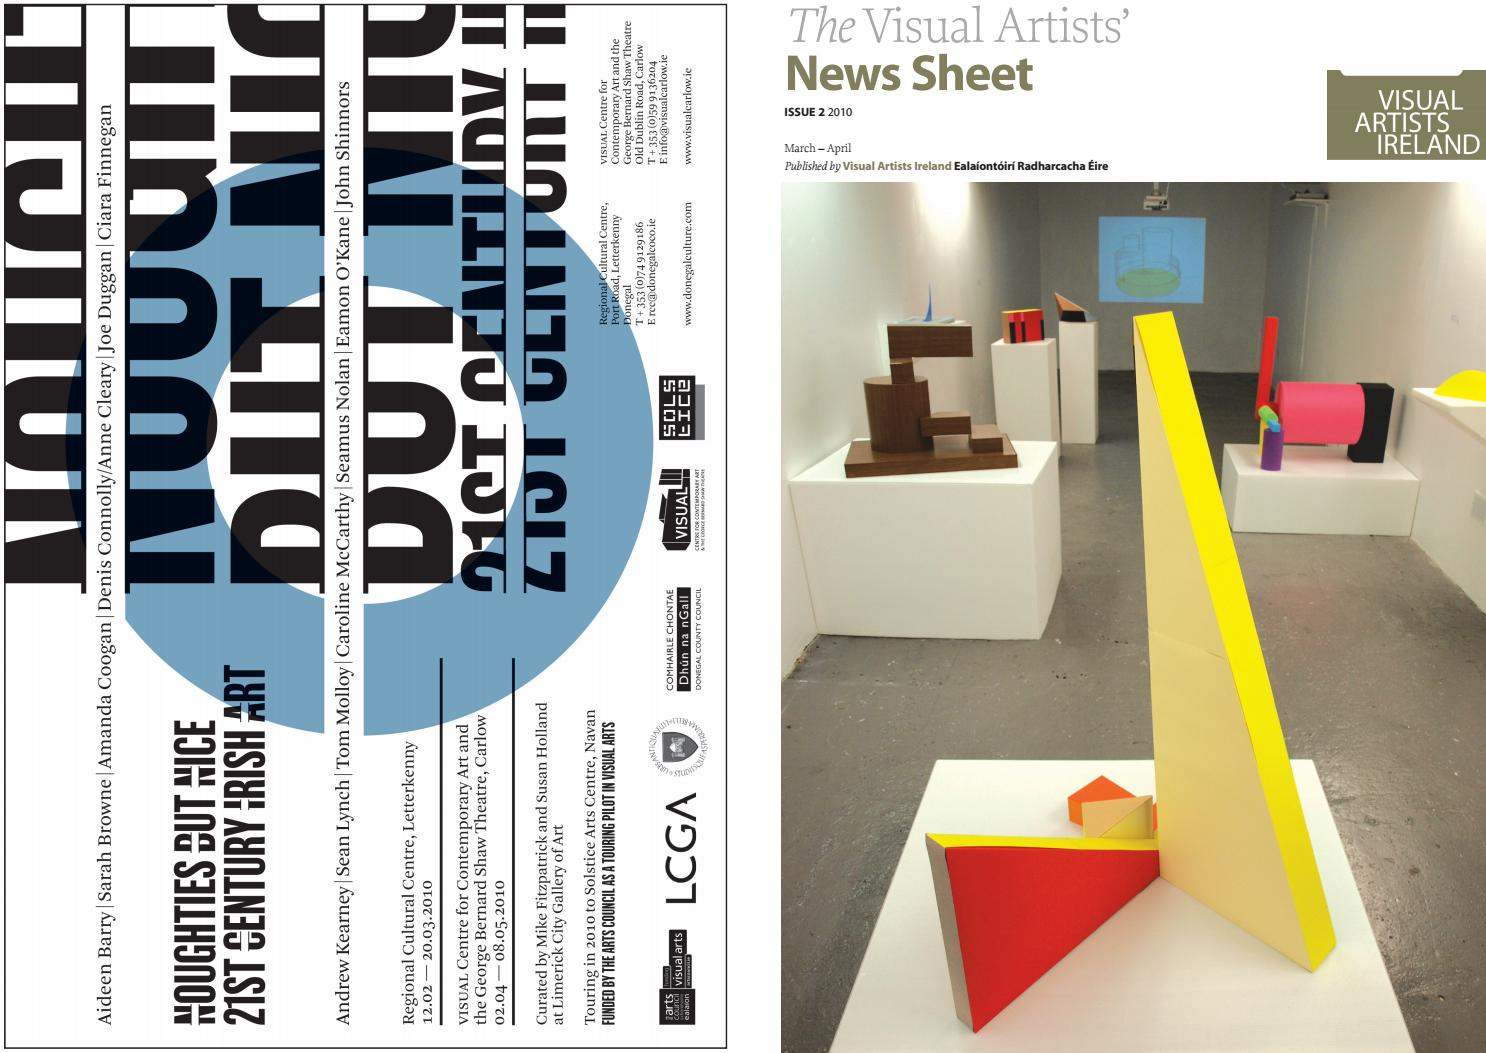 Visual Artists' News Sheet - 2010 March April by